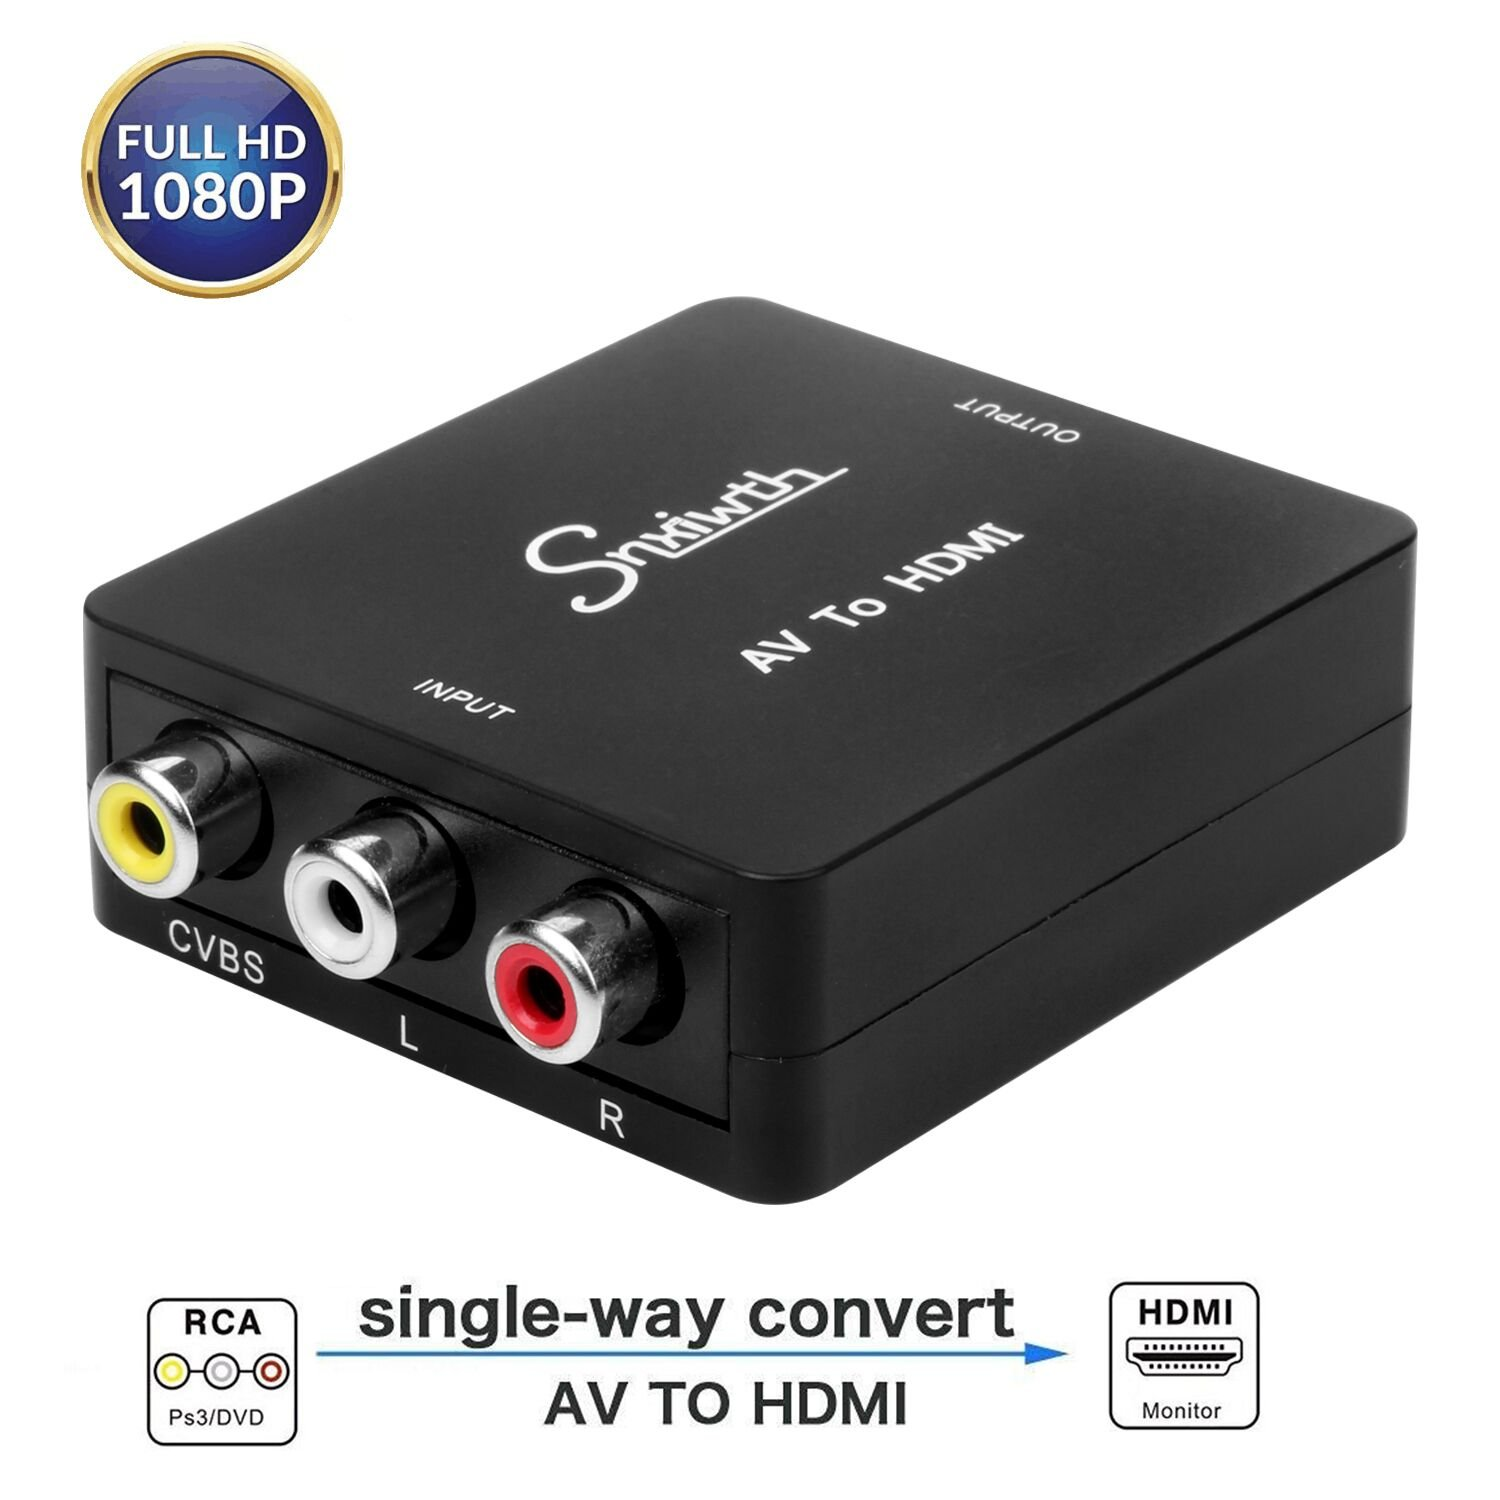 Snxiwth RCA to HDMI, 1080P Mini RCA Composite CVBS AV to HDMI Video Audio Converter Adapter,AV to HDMI for PC Laptop Xbox PS4 PS3 TV STB VHS VCR Camera DVD.